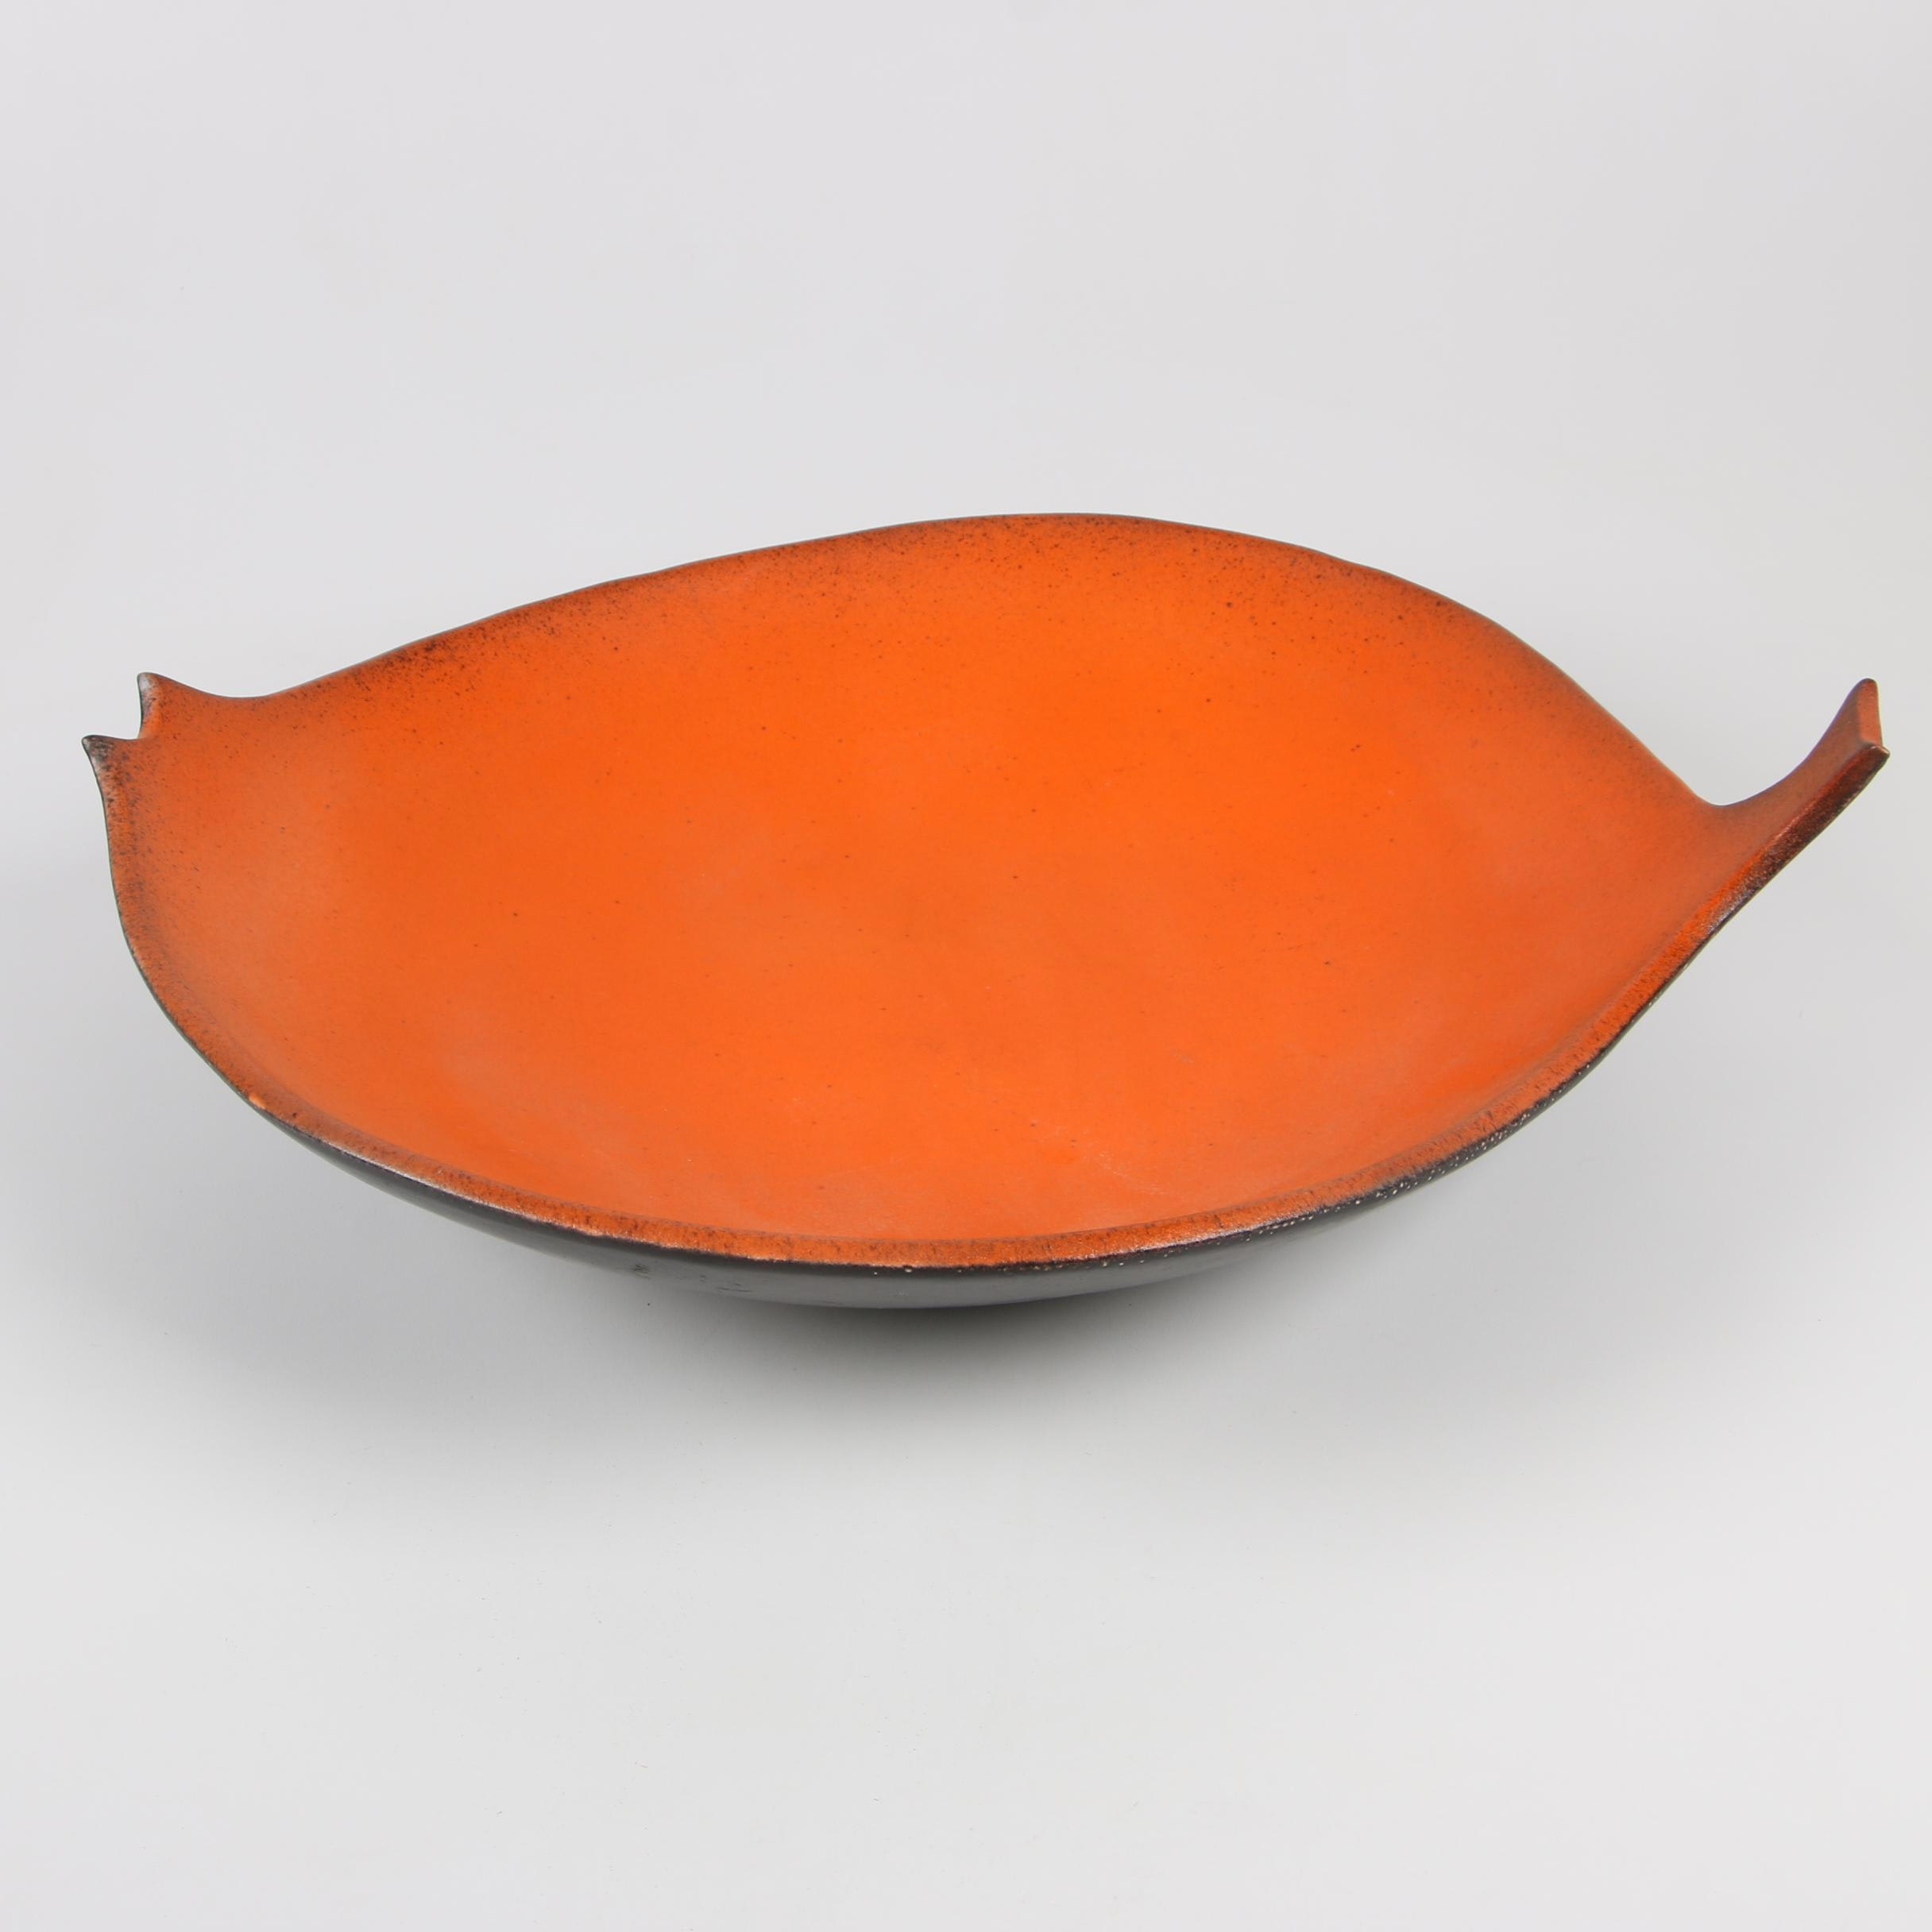 Danish Modern Style Earthenware Leaf Form Platter